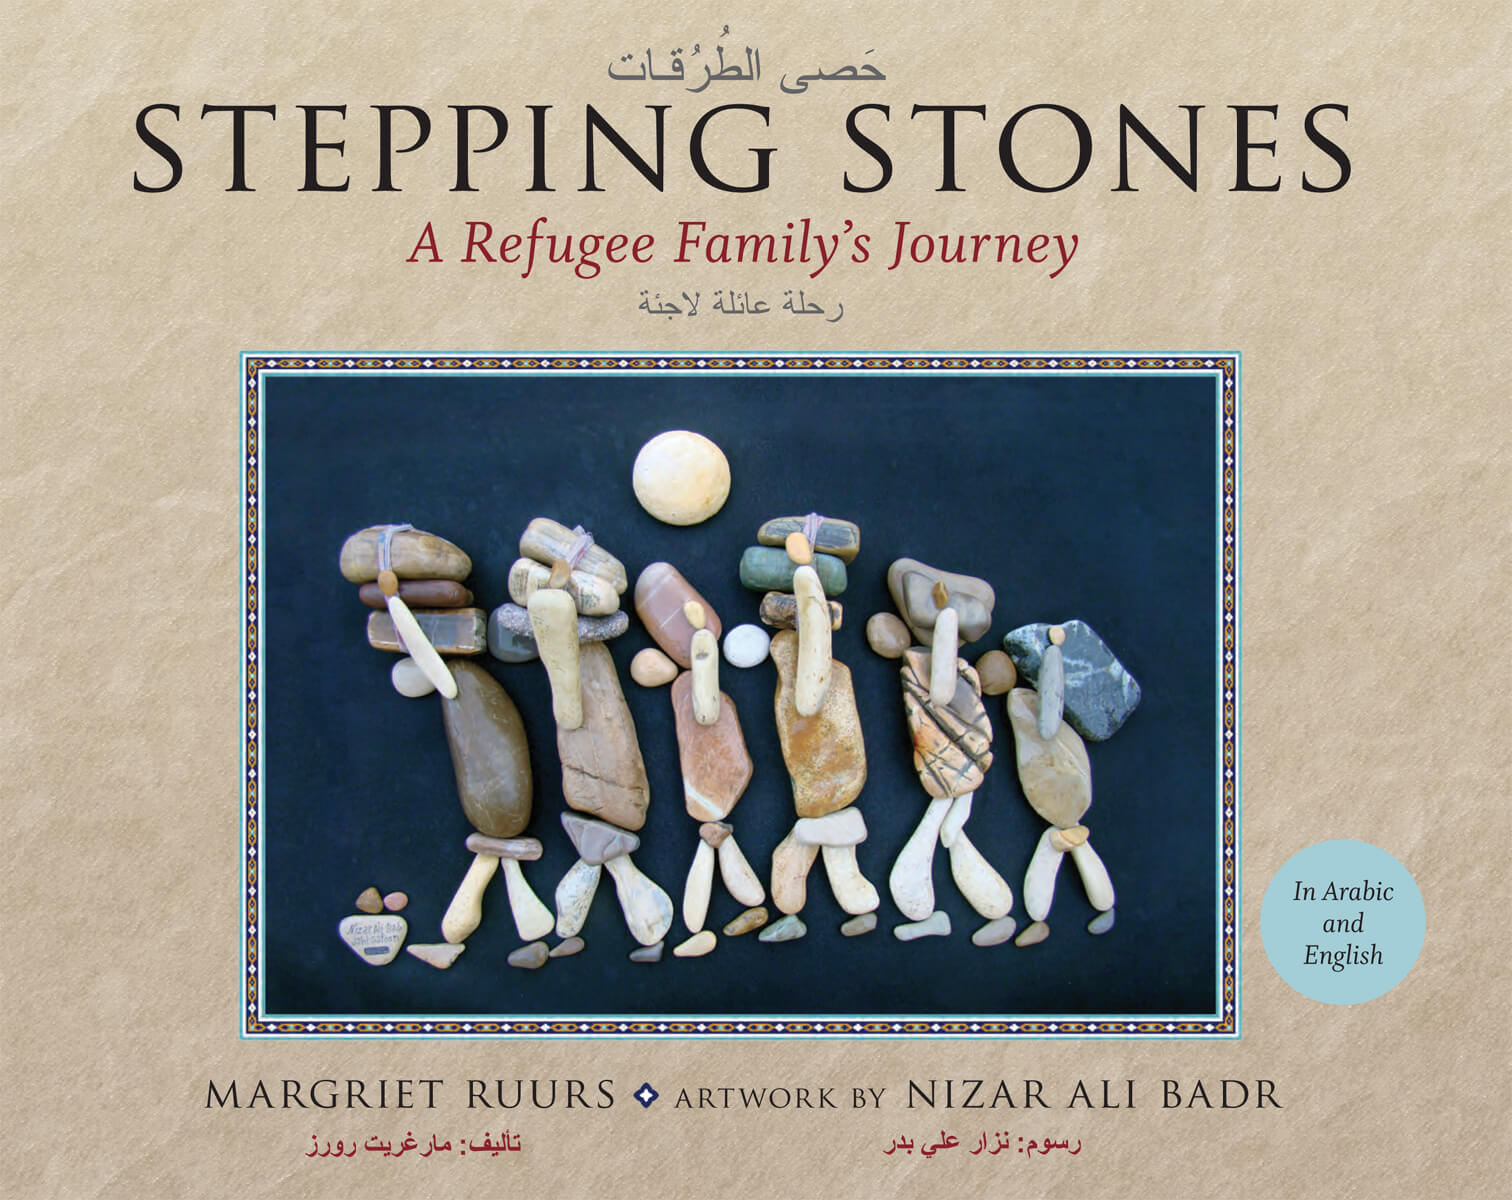 Part of a growing list of books about refugees.